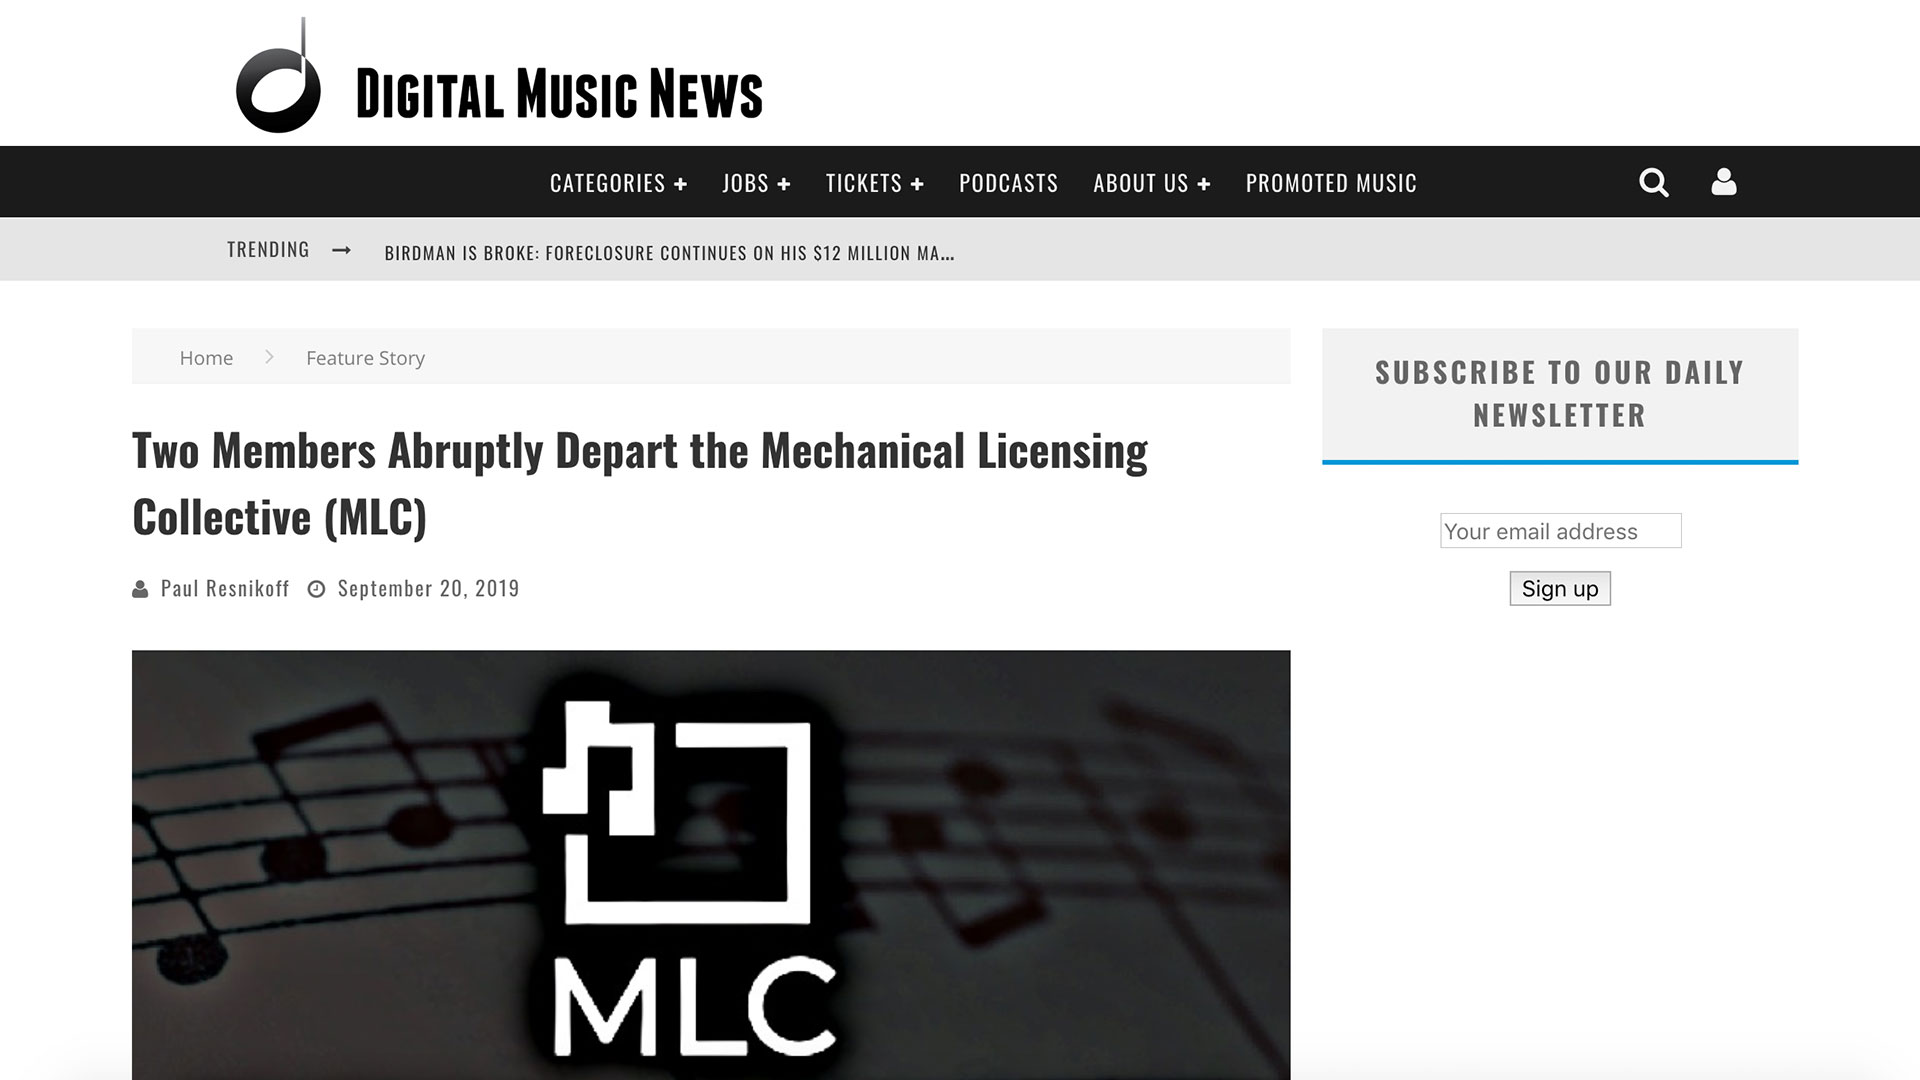 Fairness Rocks News Two Members Abruptly Depart the Mechanical Licensing Collective (MLC)